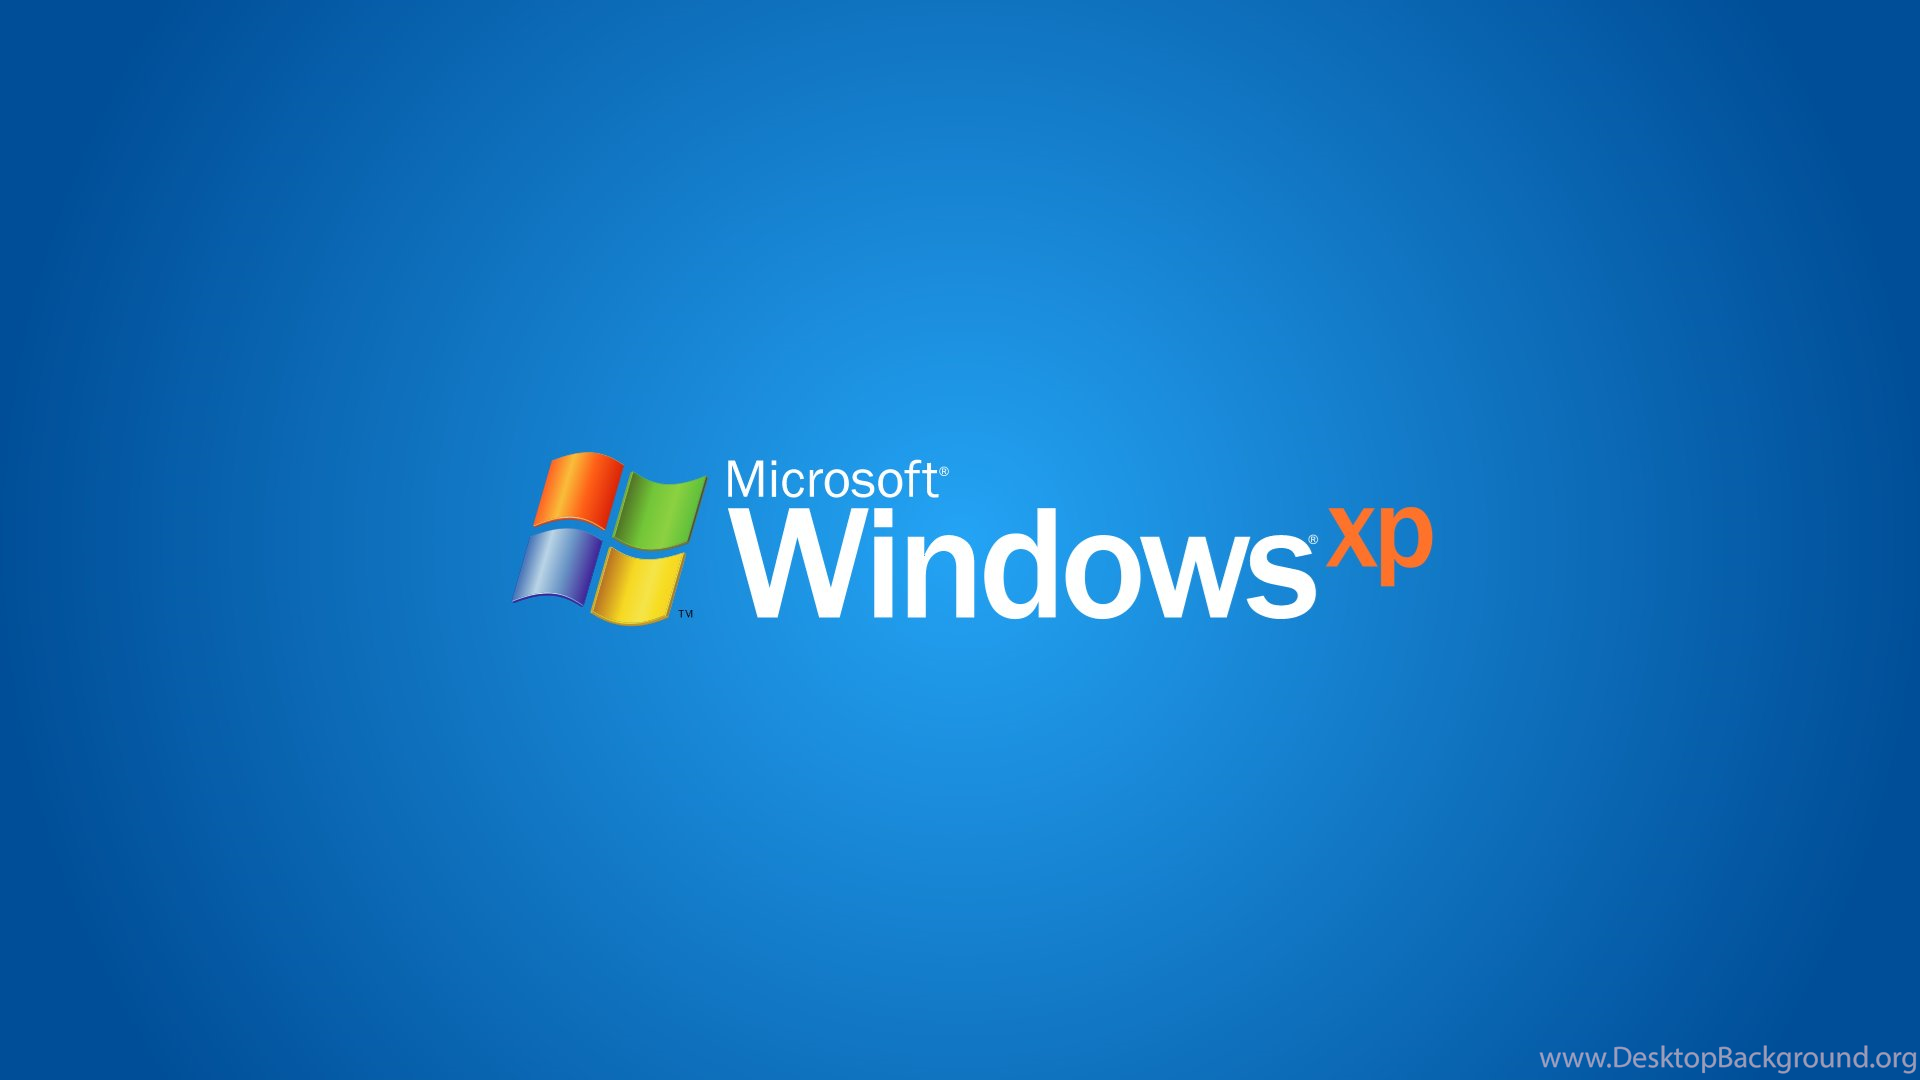 50 cool windows xp wallpapers in hd for free download desktop background